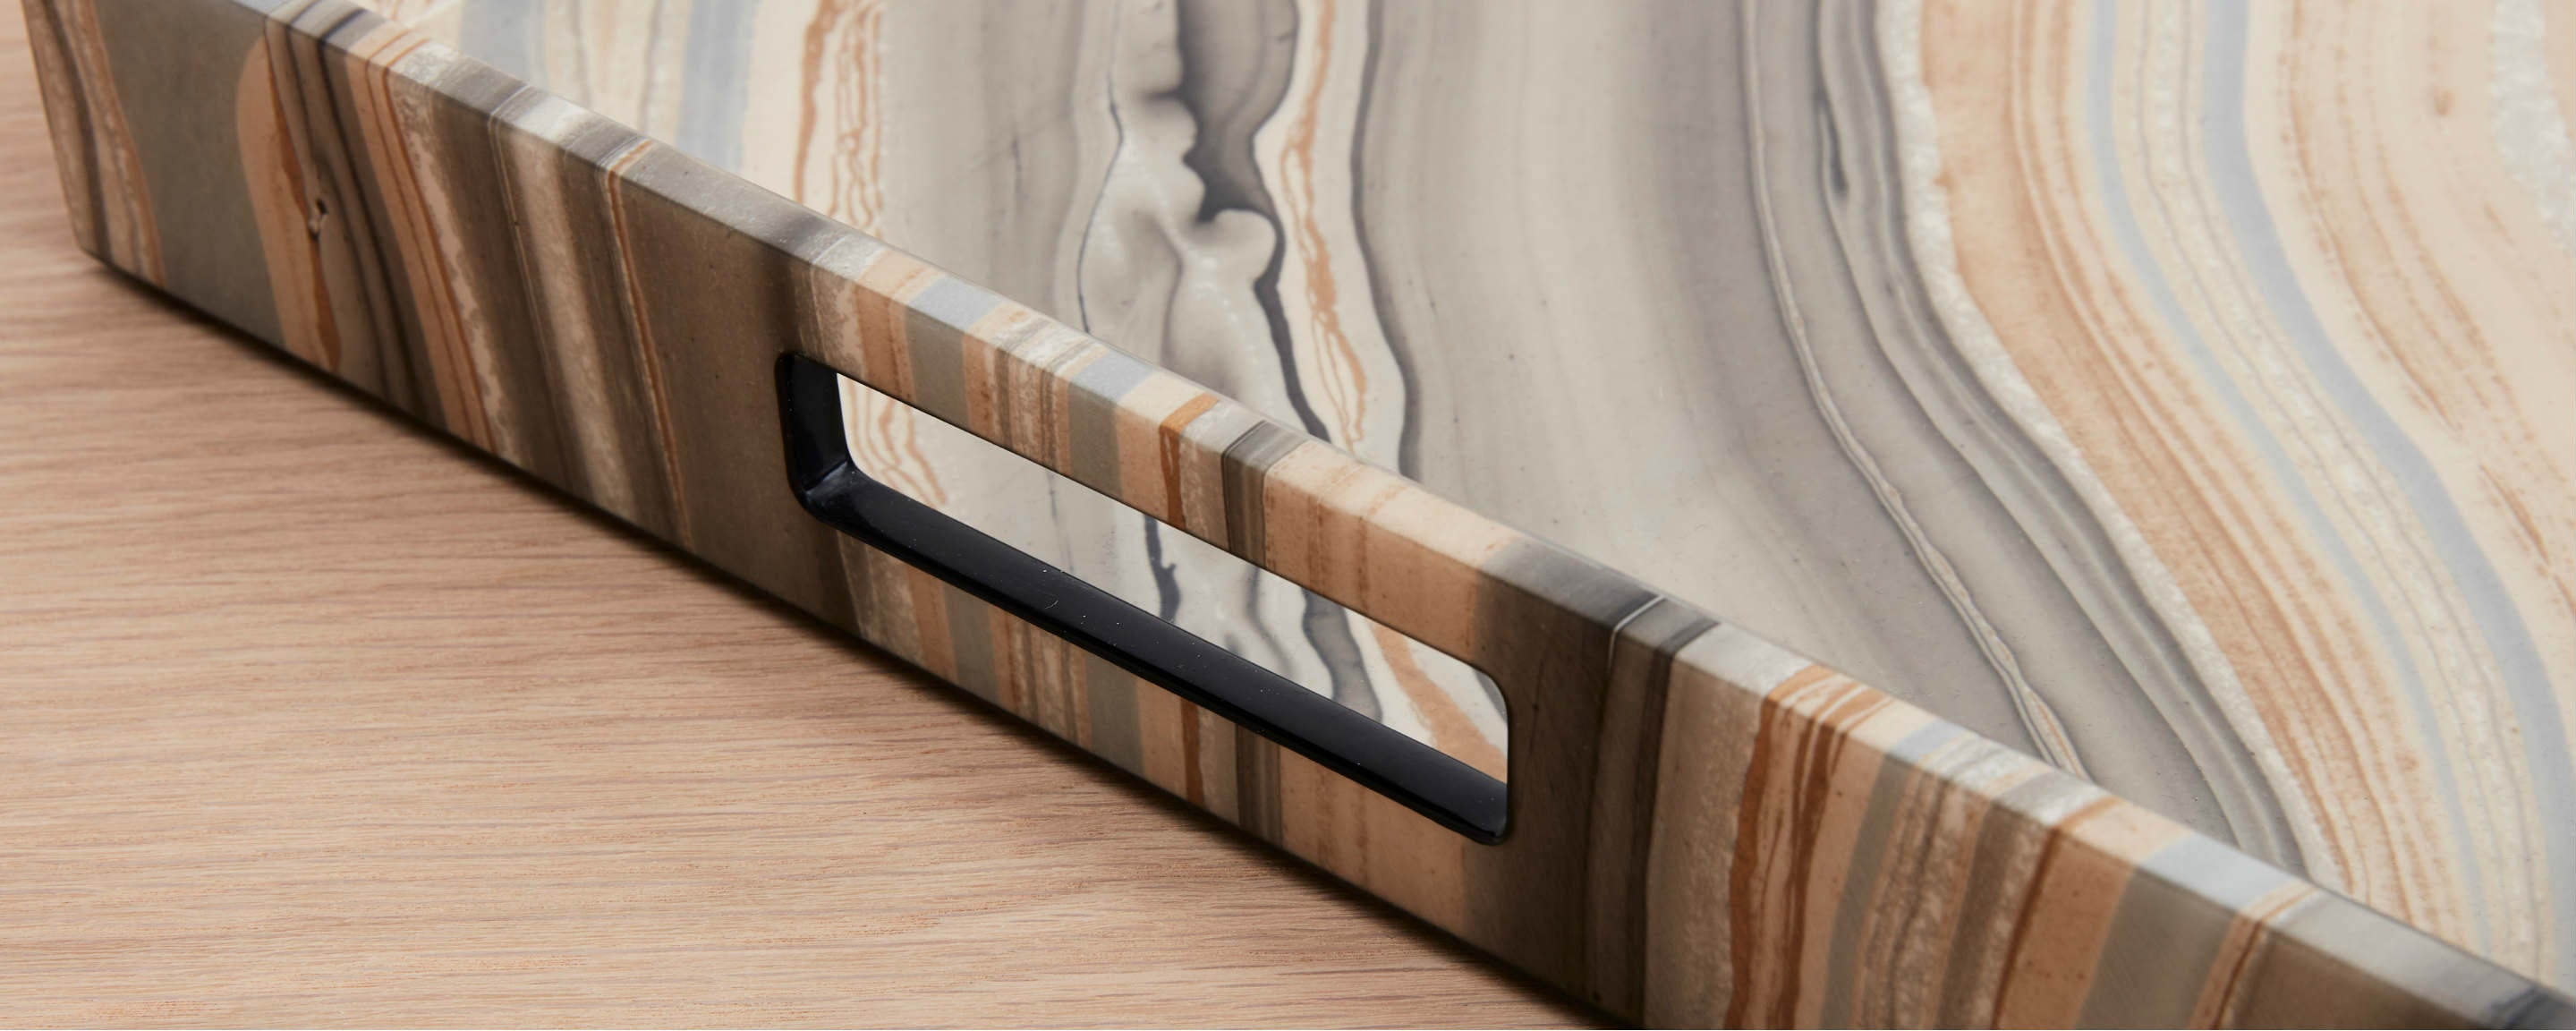 marbleized lacquer trays